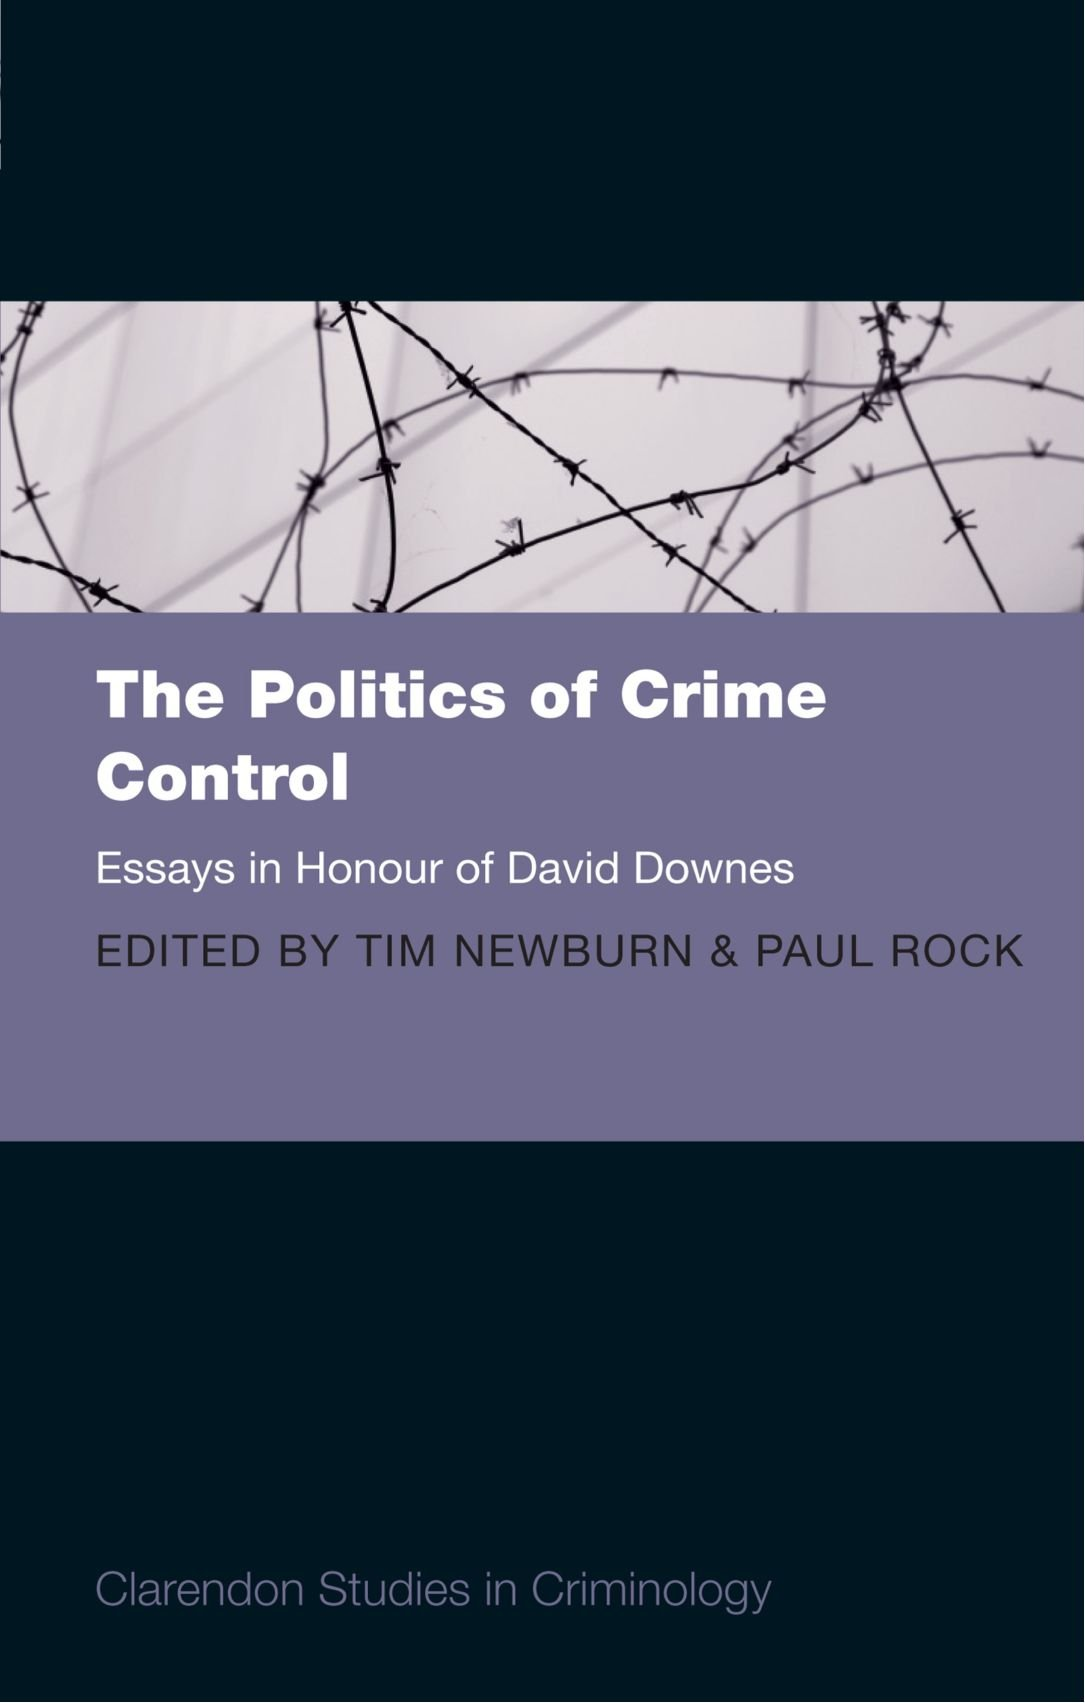 the politics of crime control essays in honour of david downes the politics of crime control essays in honour of david downes clarendon studies in criminology amazon co uk tim newburn 9780199565955 books